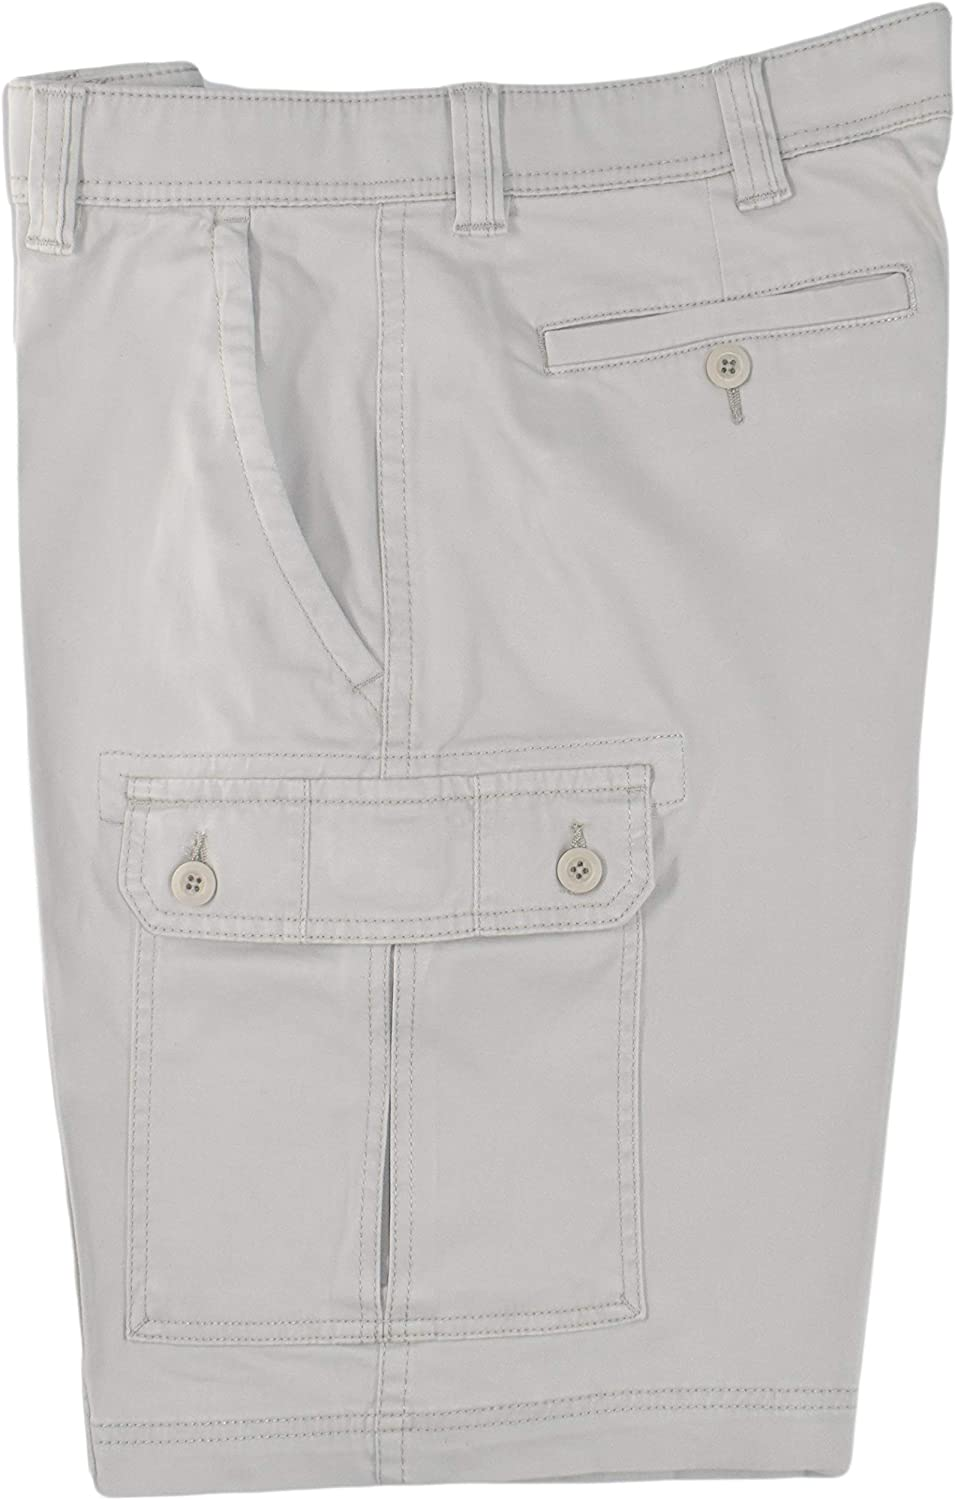 St. NEW Max 89% OFF before selling ☆ John's Bay Men's Power Cargo Shorts Stretch Stone Classic